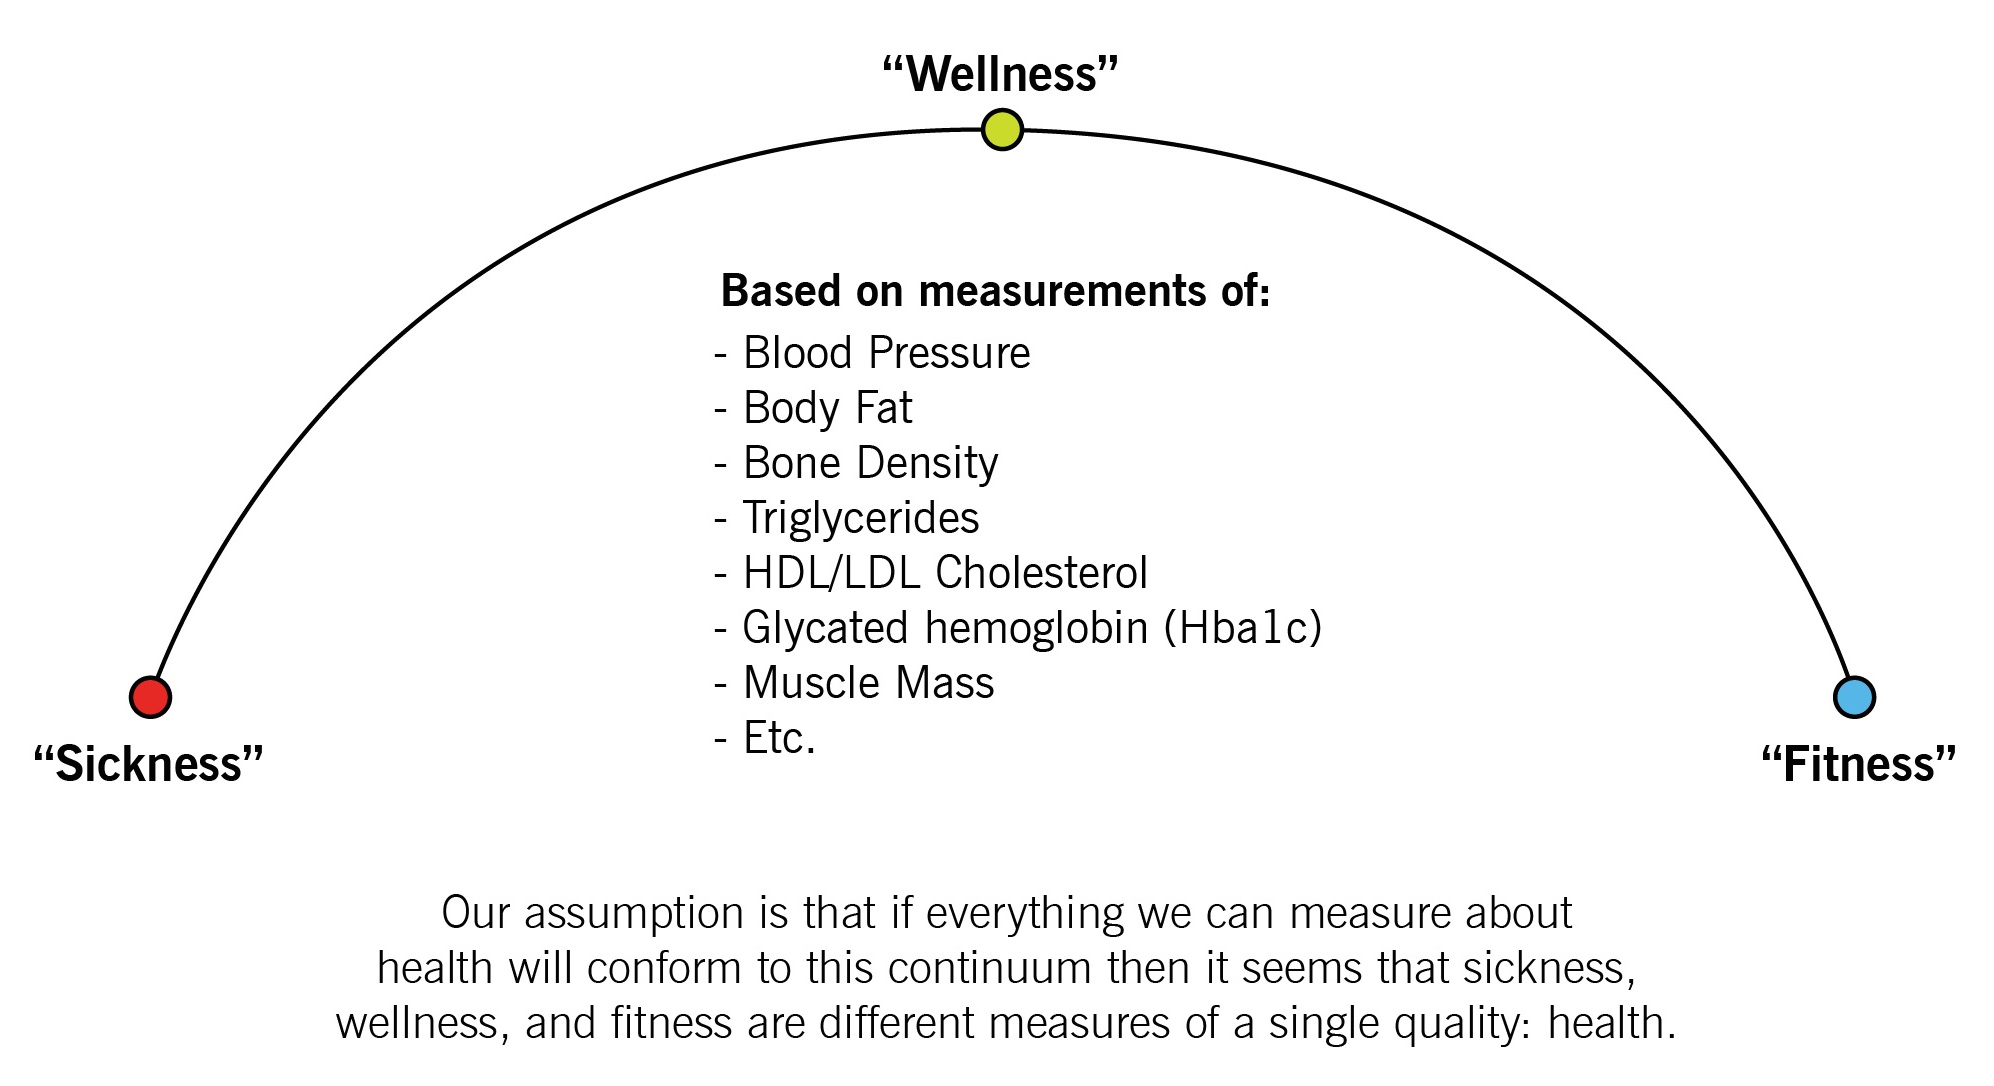 Sickness, Wellness, Fitness Continuum - CrossFit, Inc.